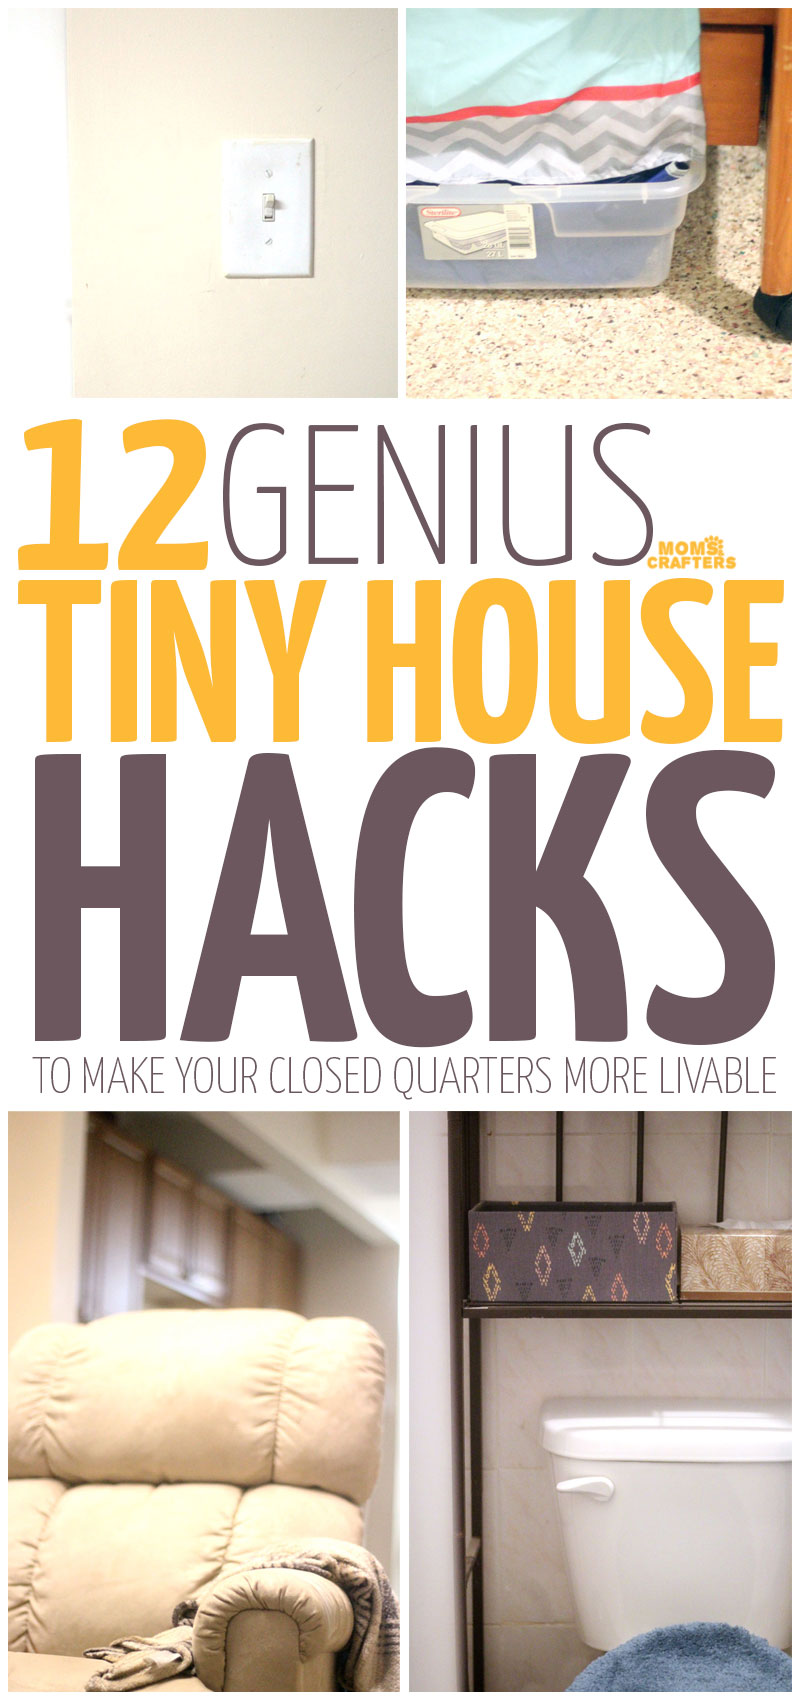 You'll love these genius tiny house hacks for keeping a small apartment organized and neat. These home organization tips also teach little DIY tricks and tools for making a small house feel bigger.